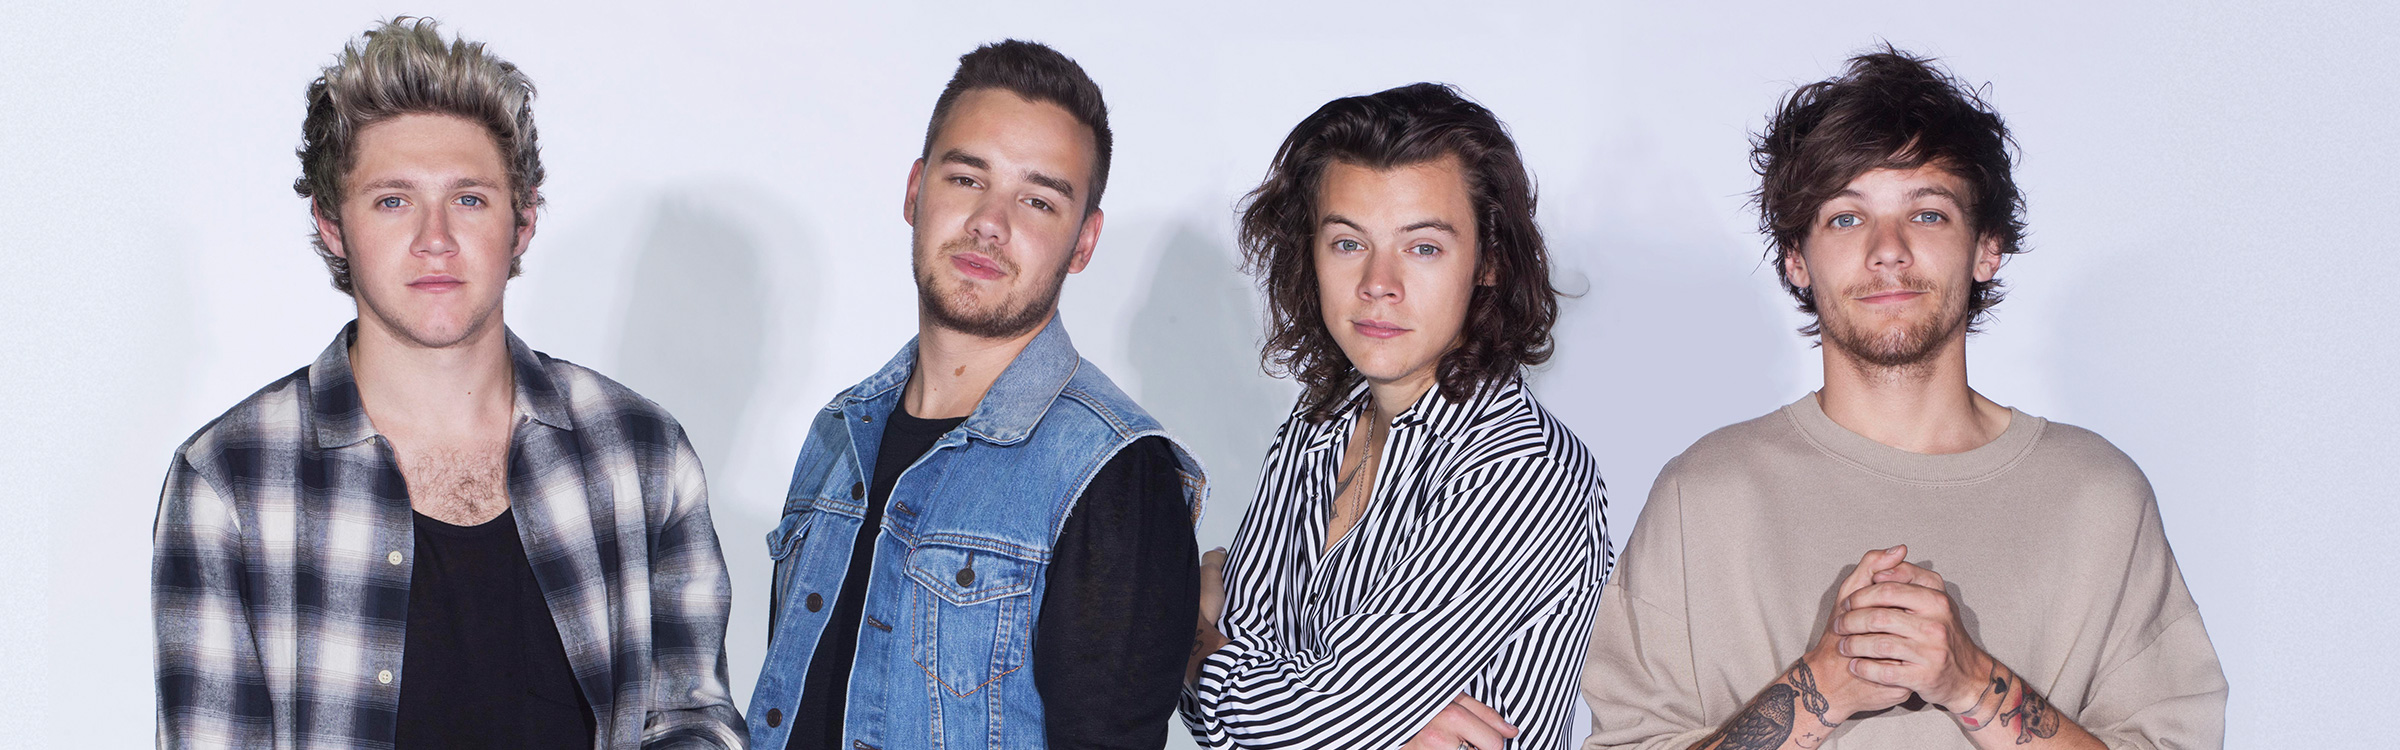 2400x750 sns onedirection